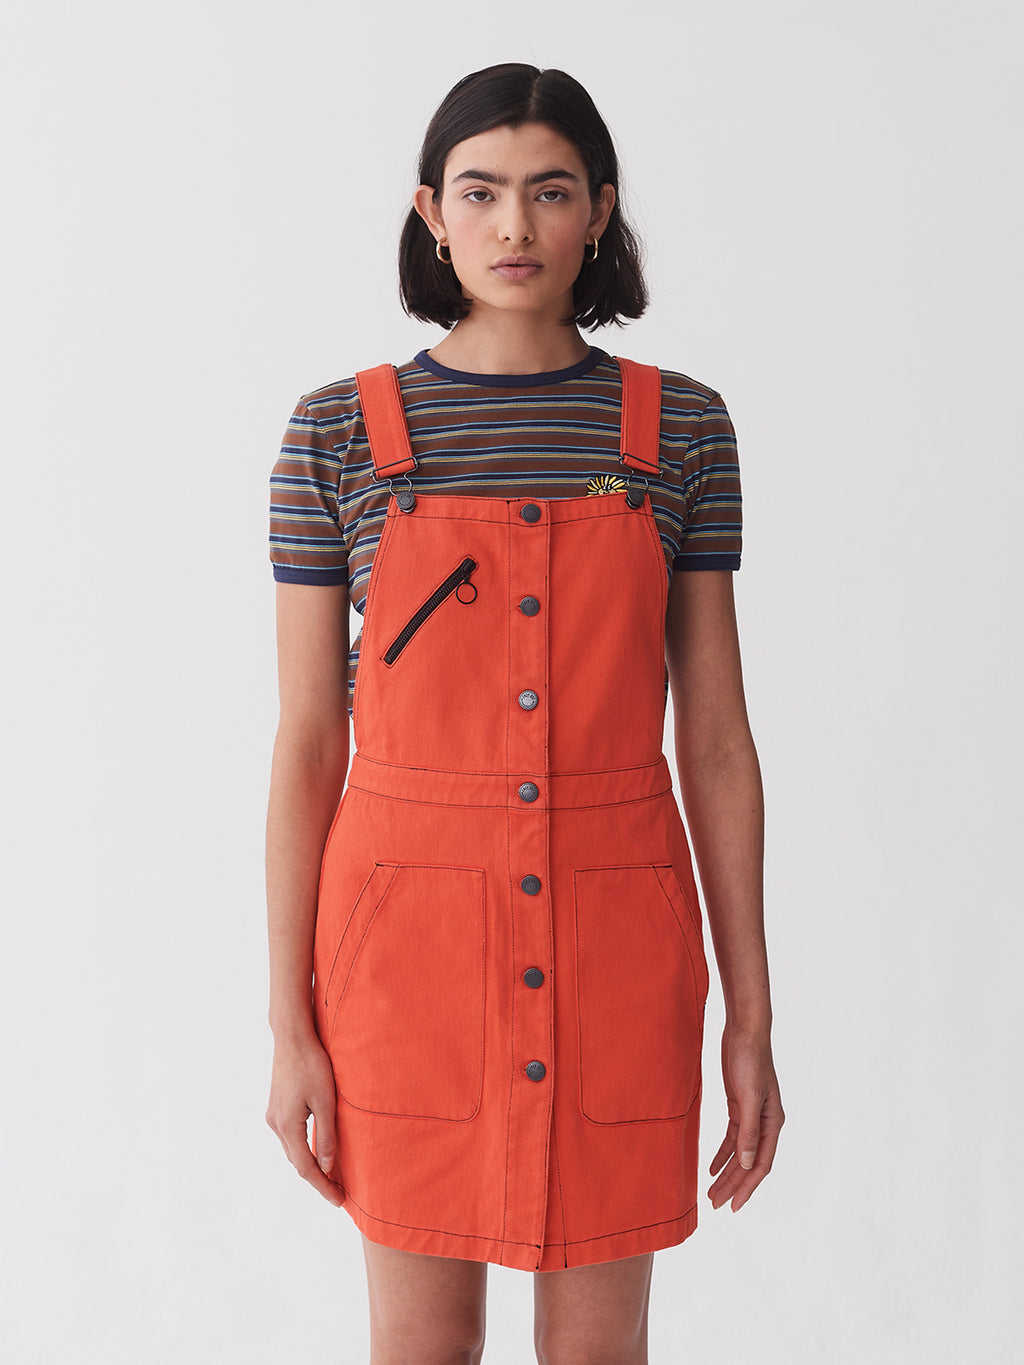 Lazy Oaf Orange Workwear Pinafore Dress